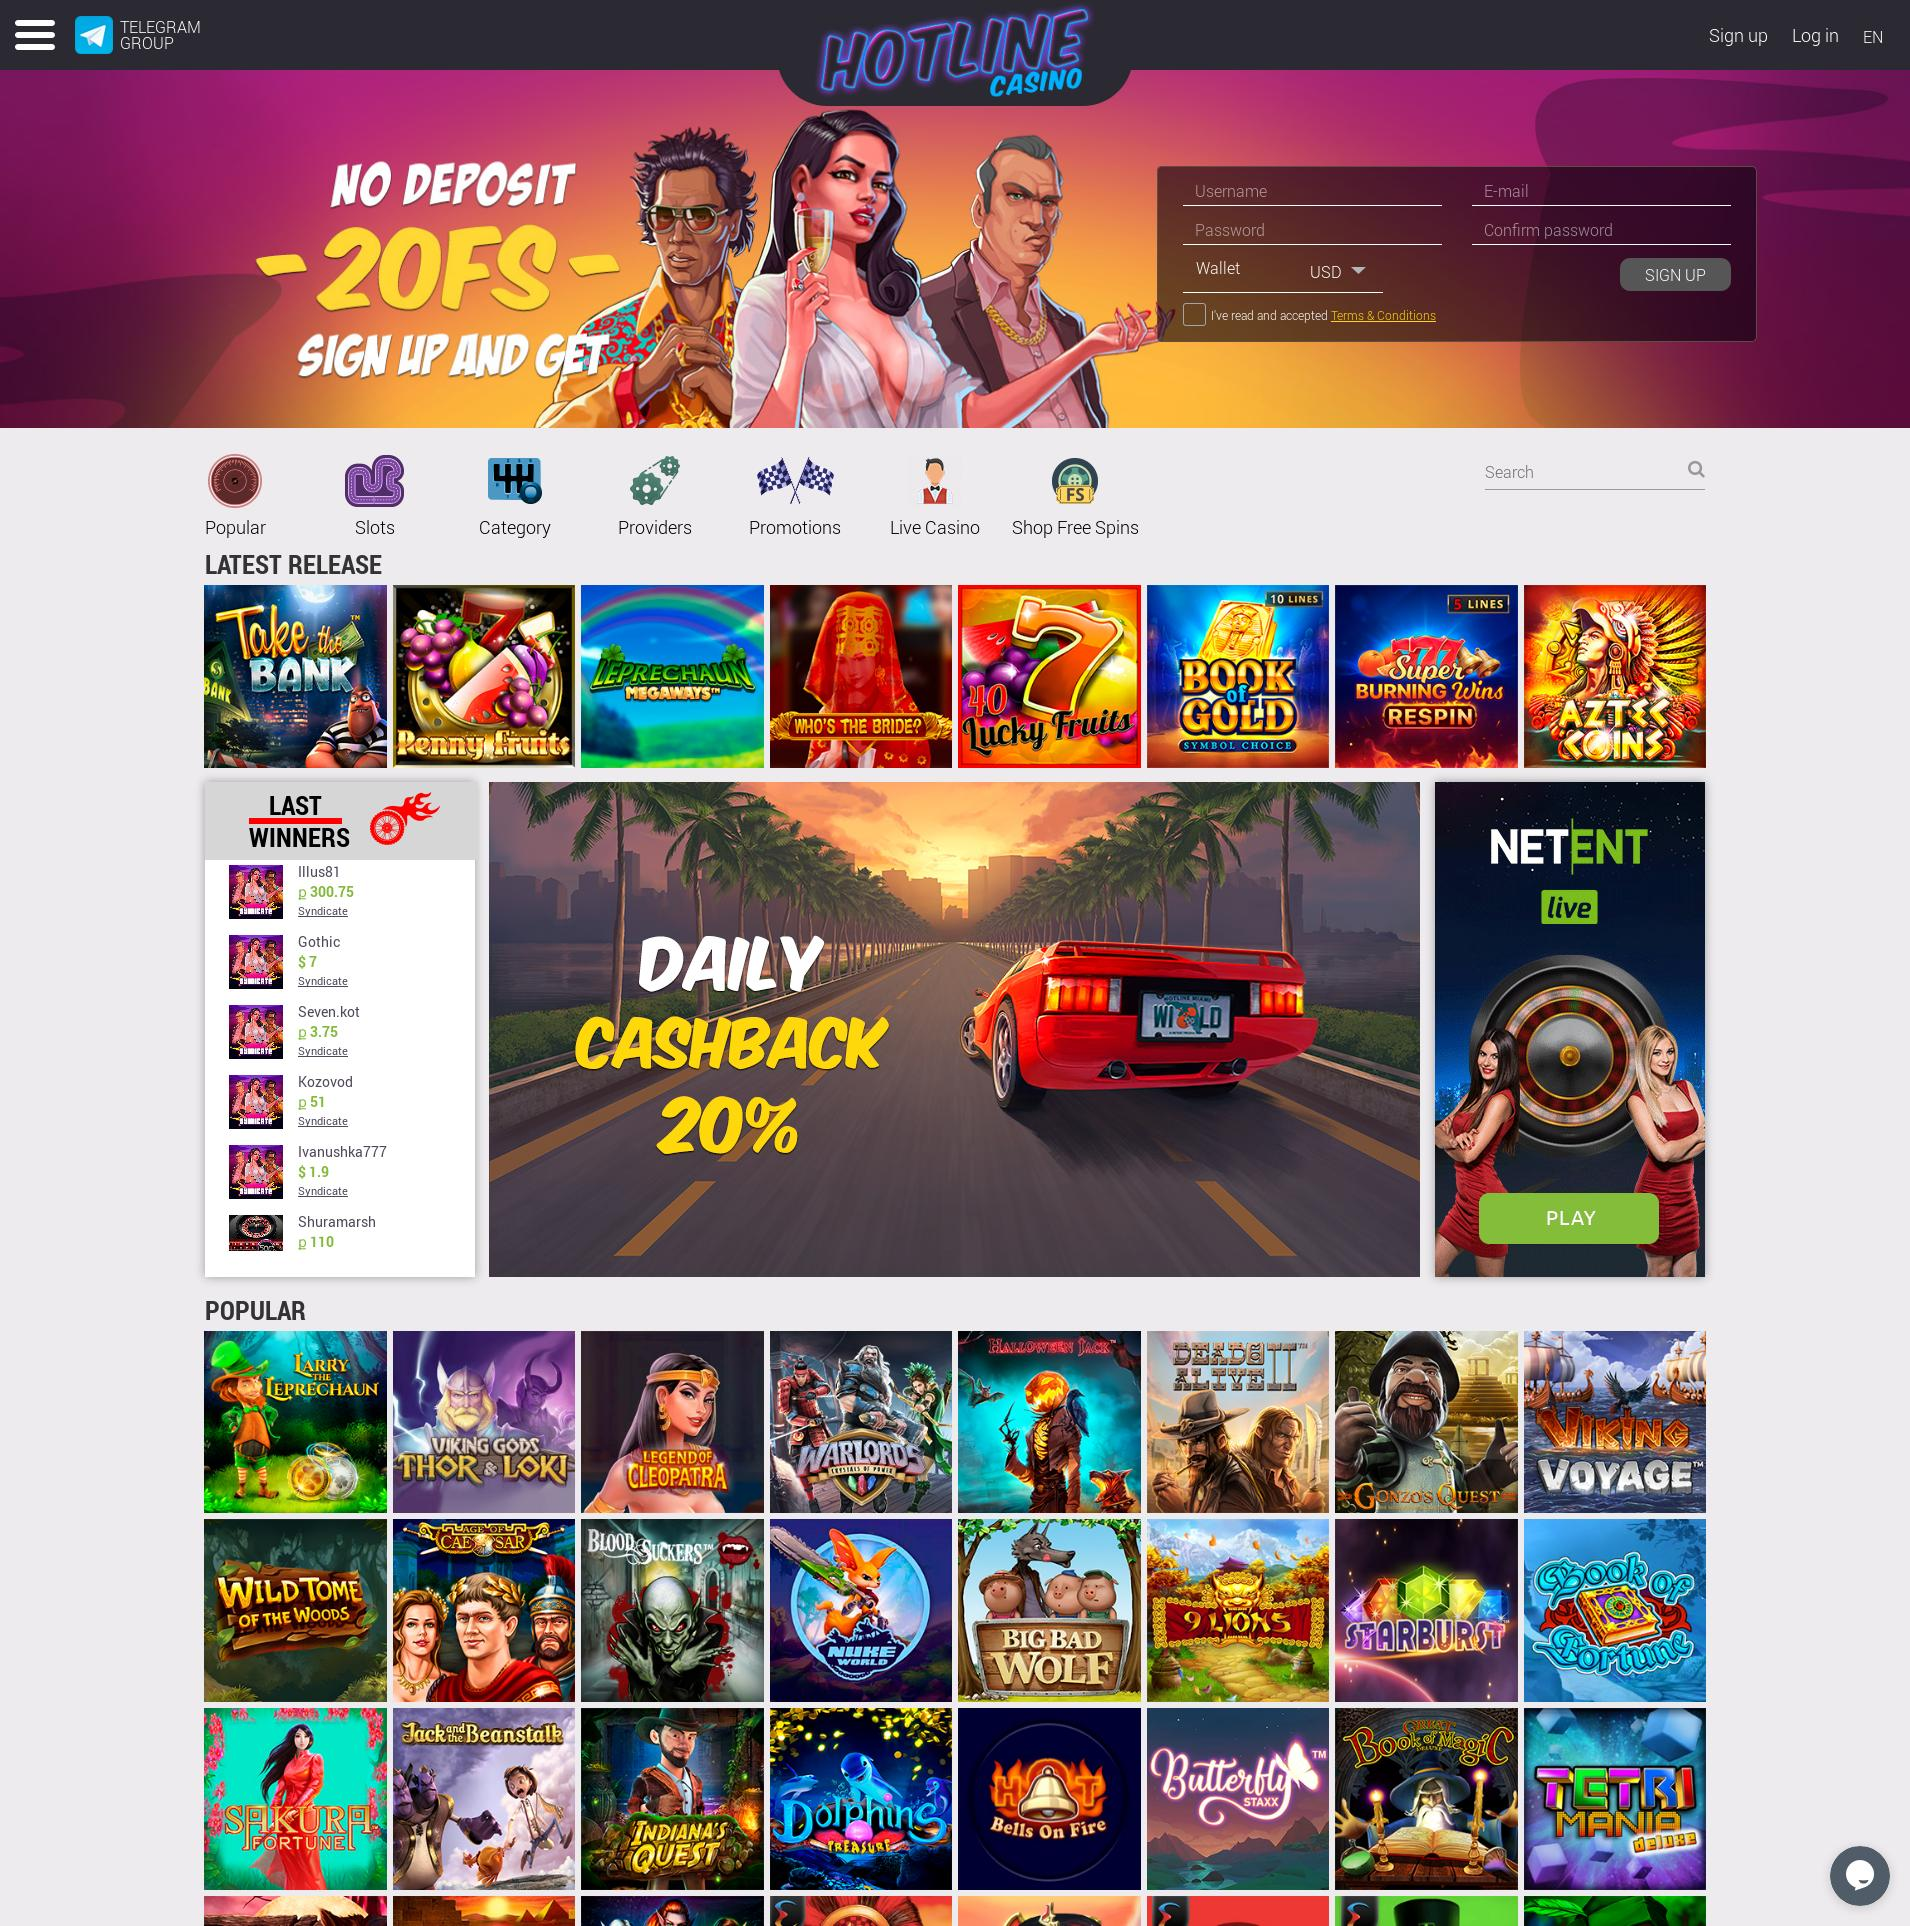 Casino screen Lobby 2019-11-18 for Russian Federation